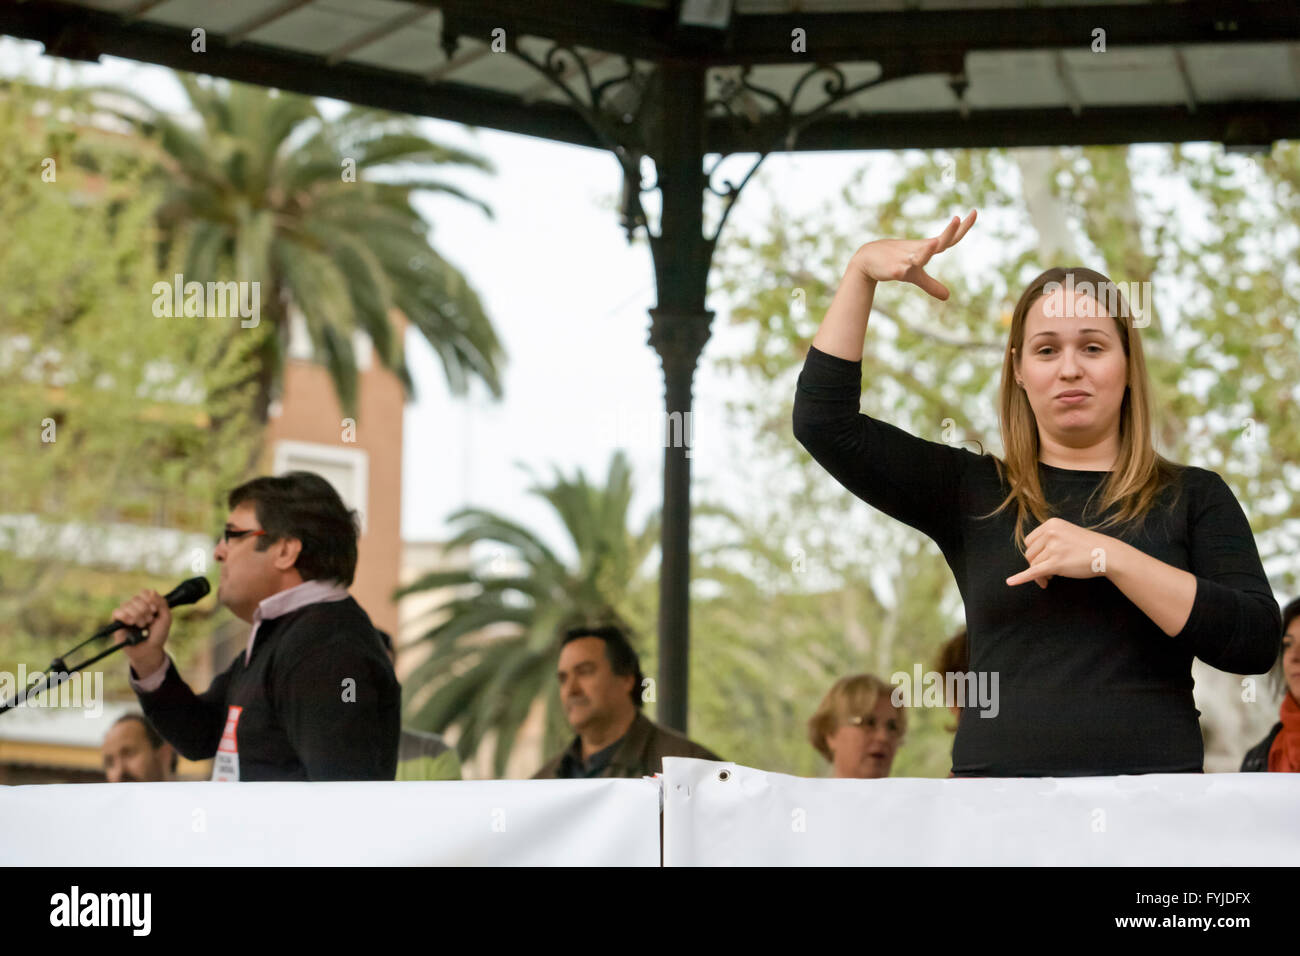 Badajoz, Spain - March 29, 2012: sign language woman interpreter gestures during a meeting that protests against - Stock Image